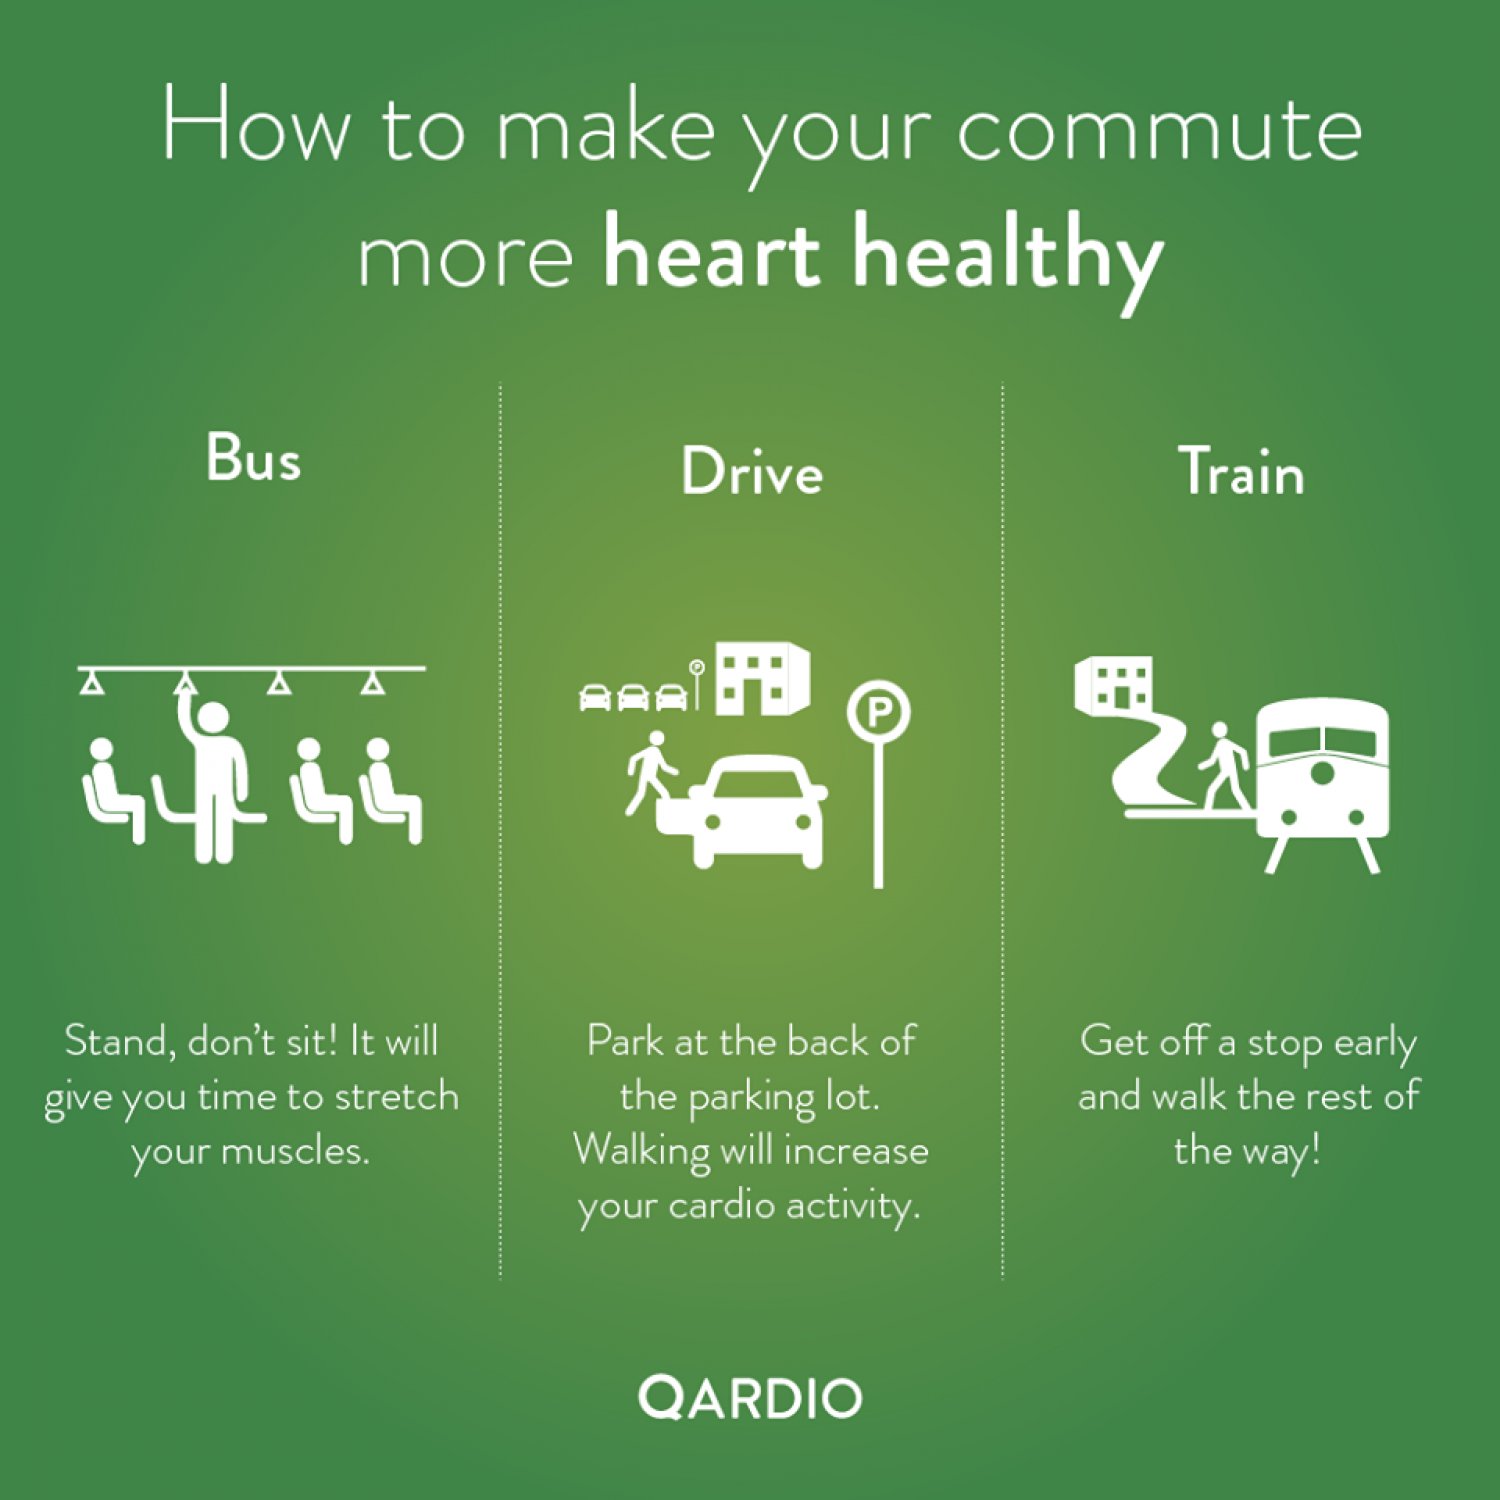 How to make your commute more heart healthy Infographic